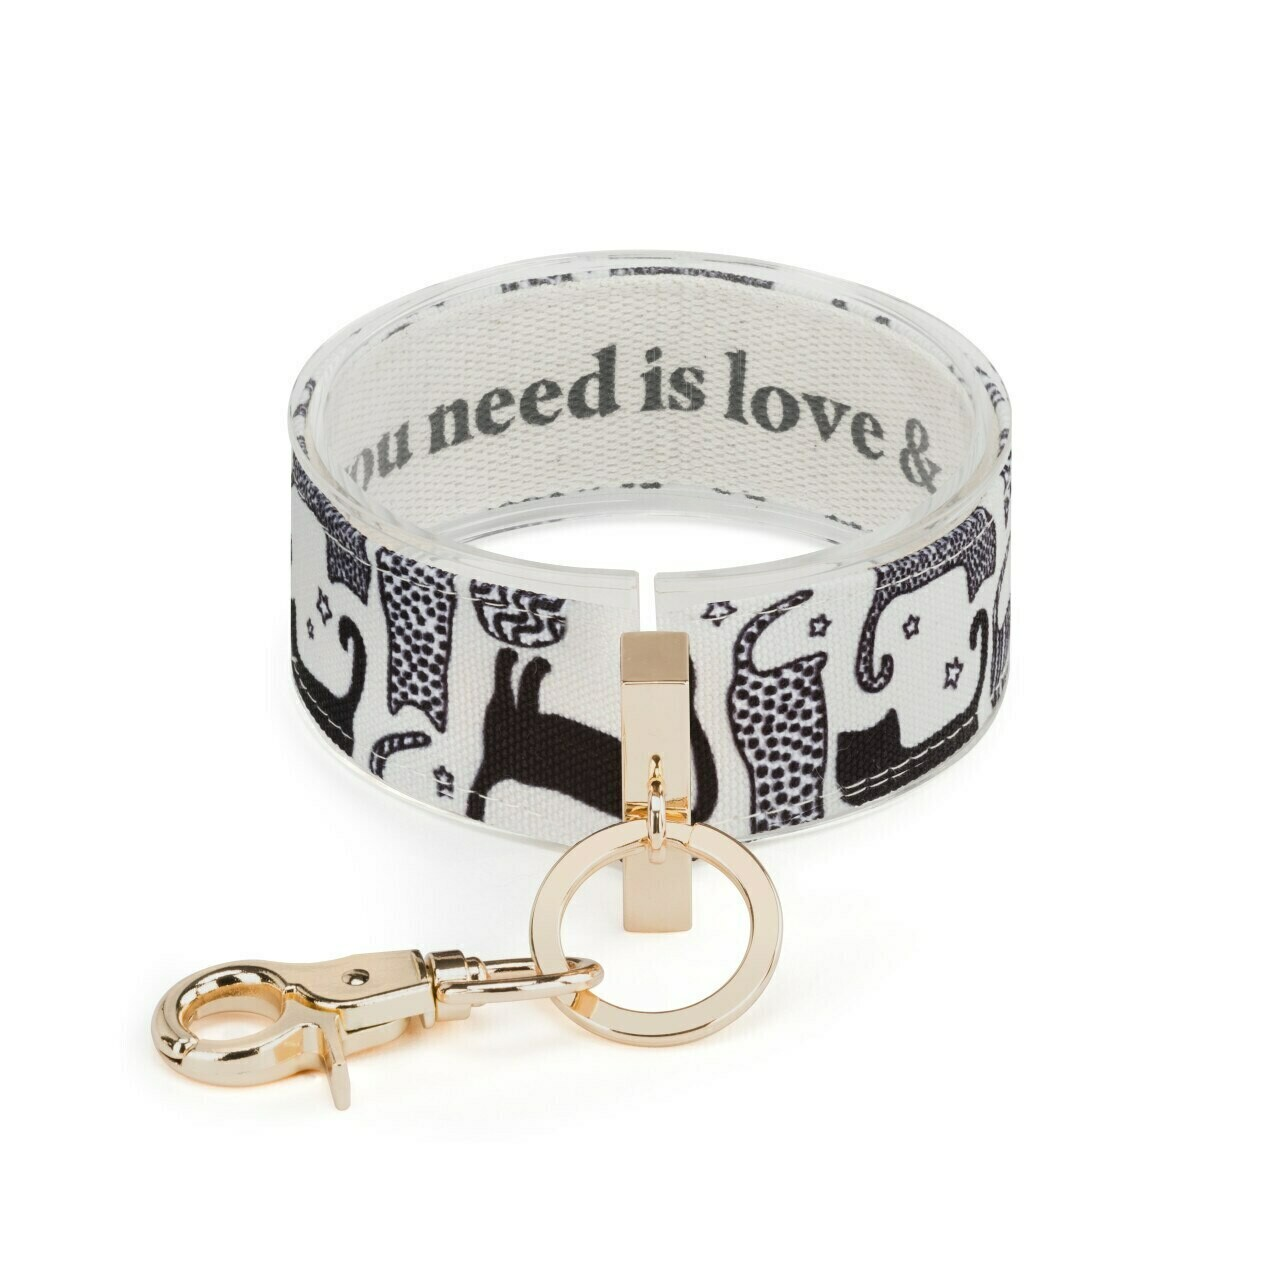 Demdaco Wrist Strap Key Ring ALL YOU NEED IS LOVE & A CAT